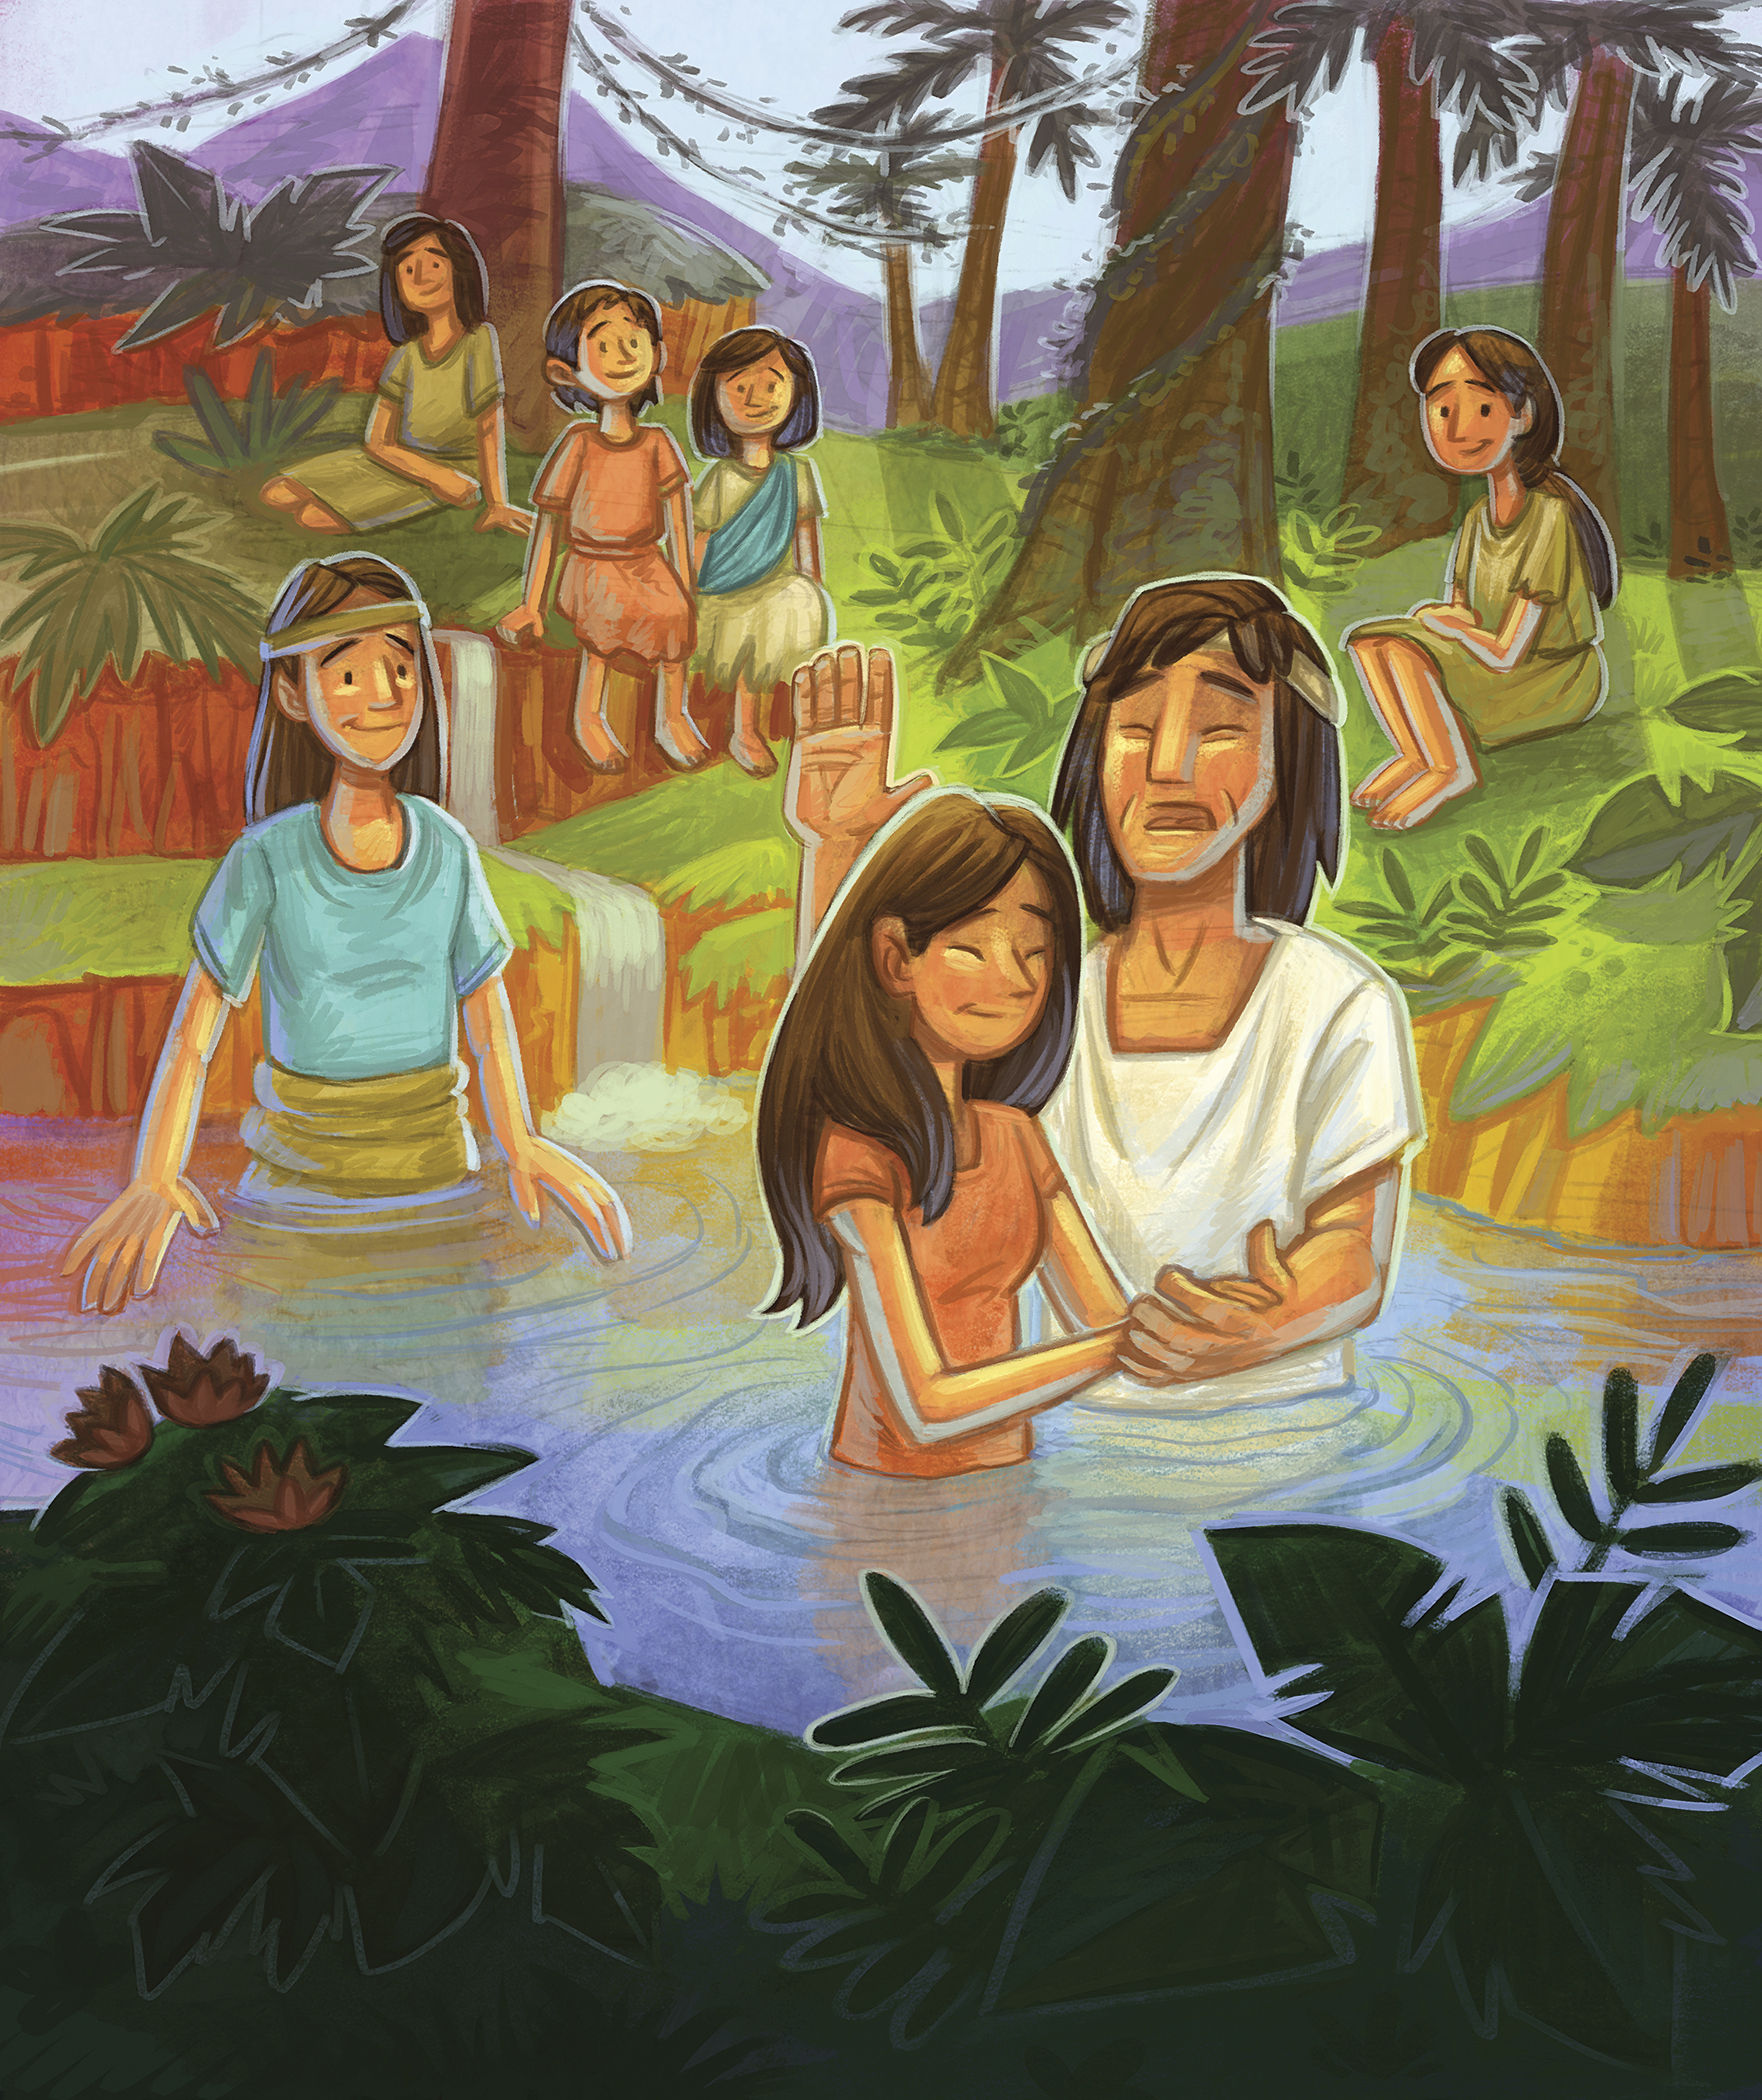 A man baptizes a woman in a river while other people watch and wait to be baptized.